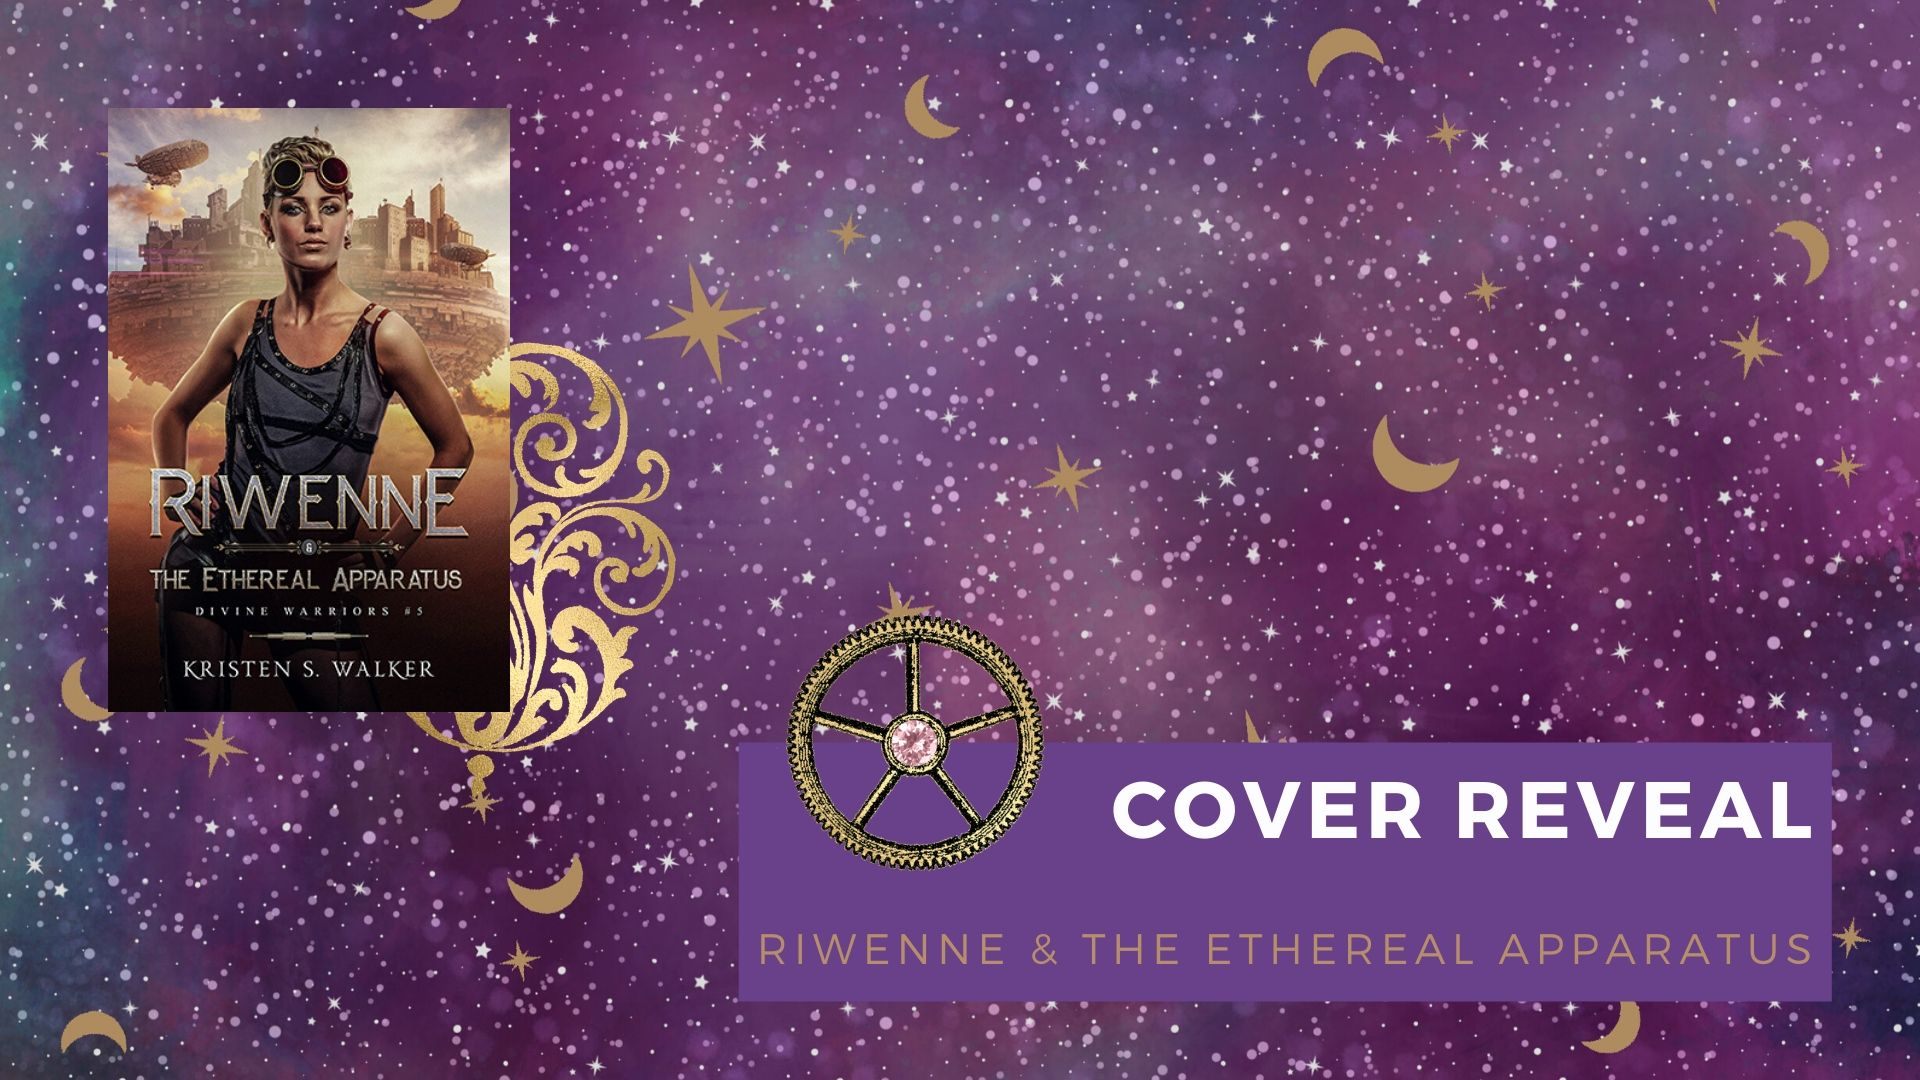 Cover Reveal: Riwenne & the Ethereal Apparatus!